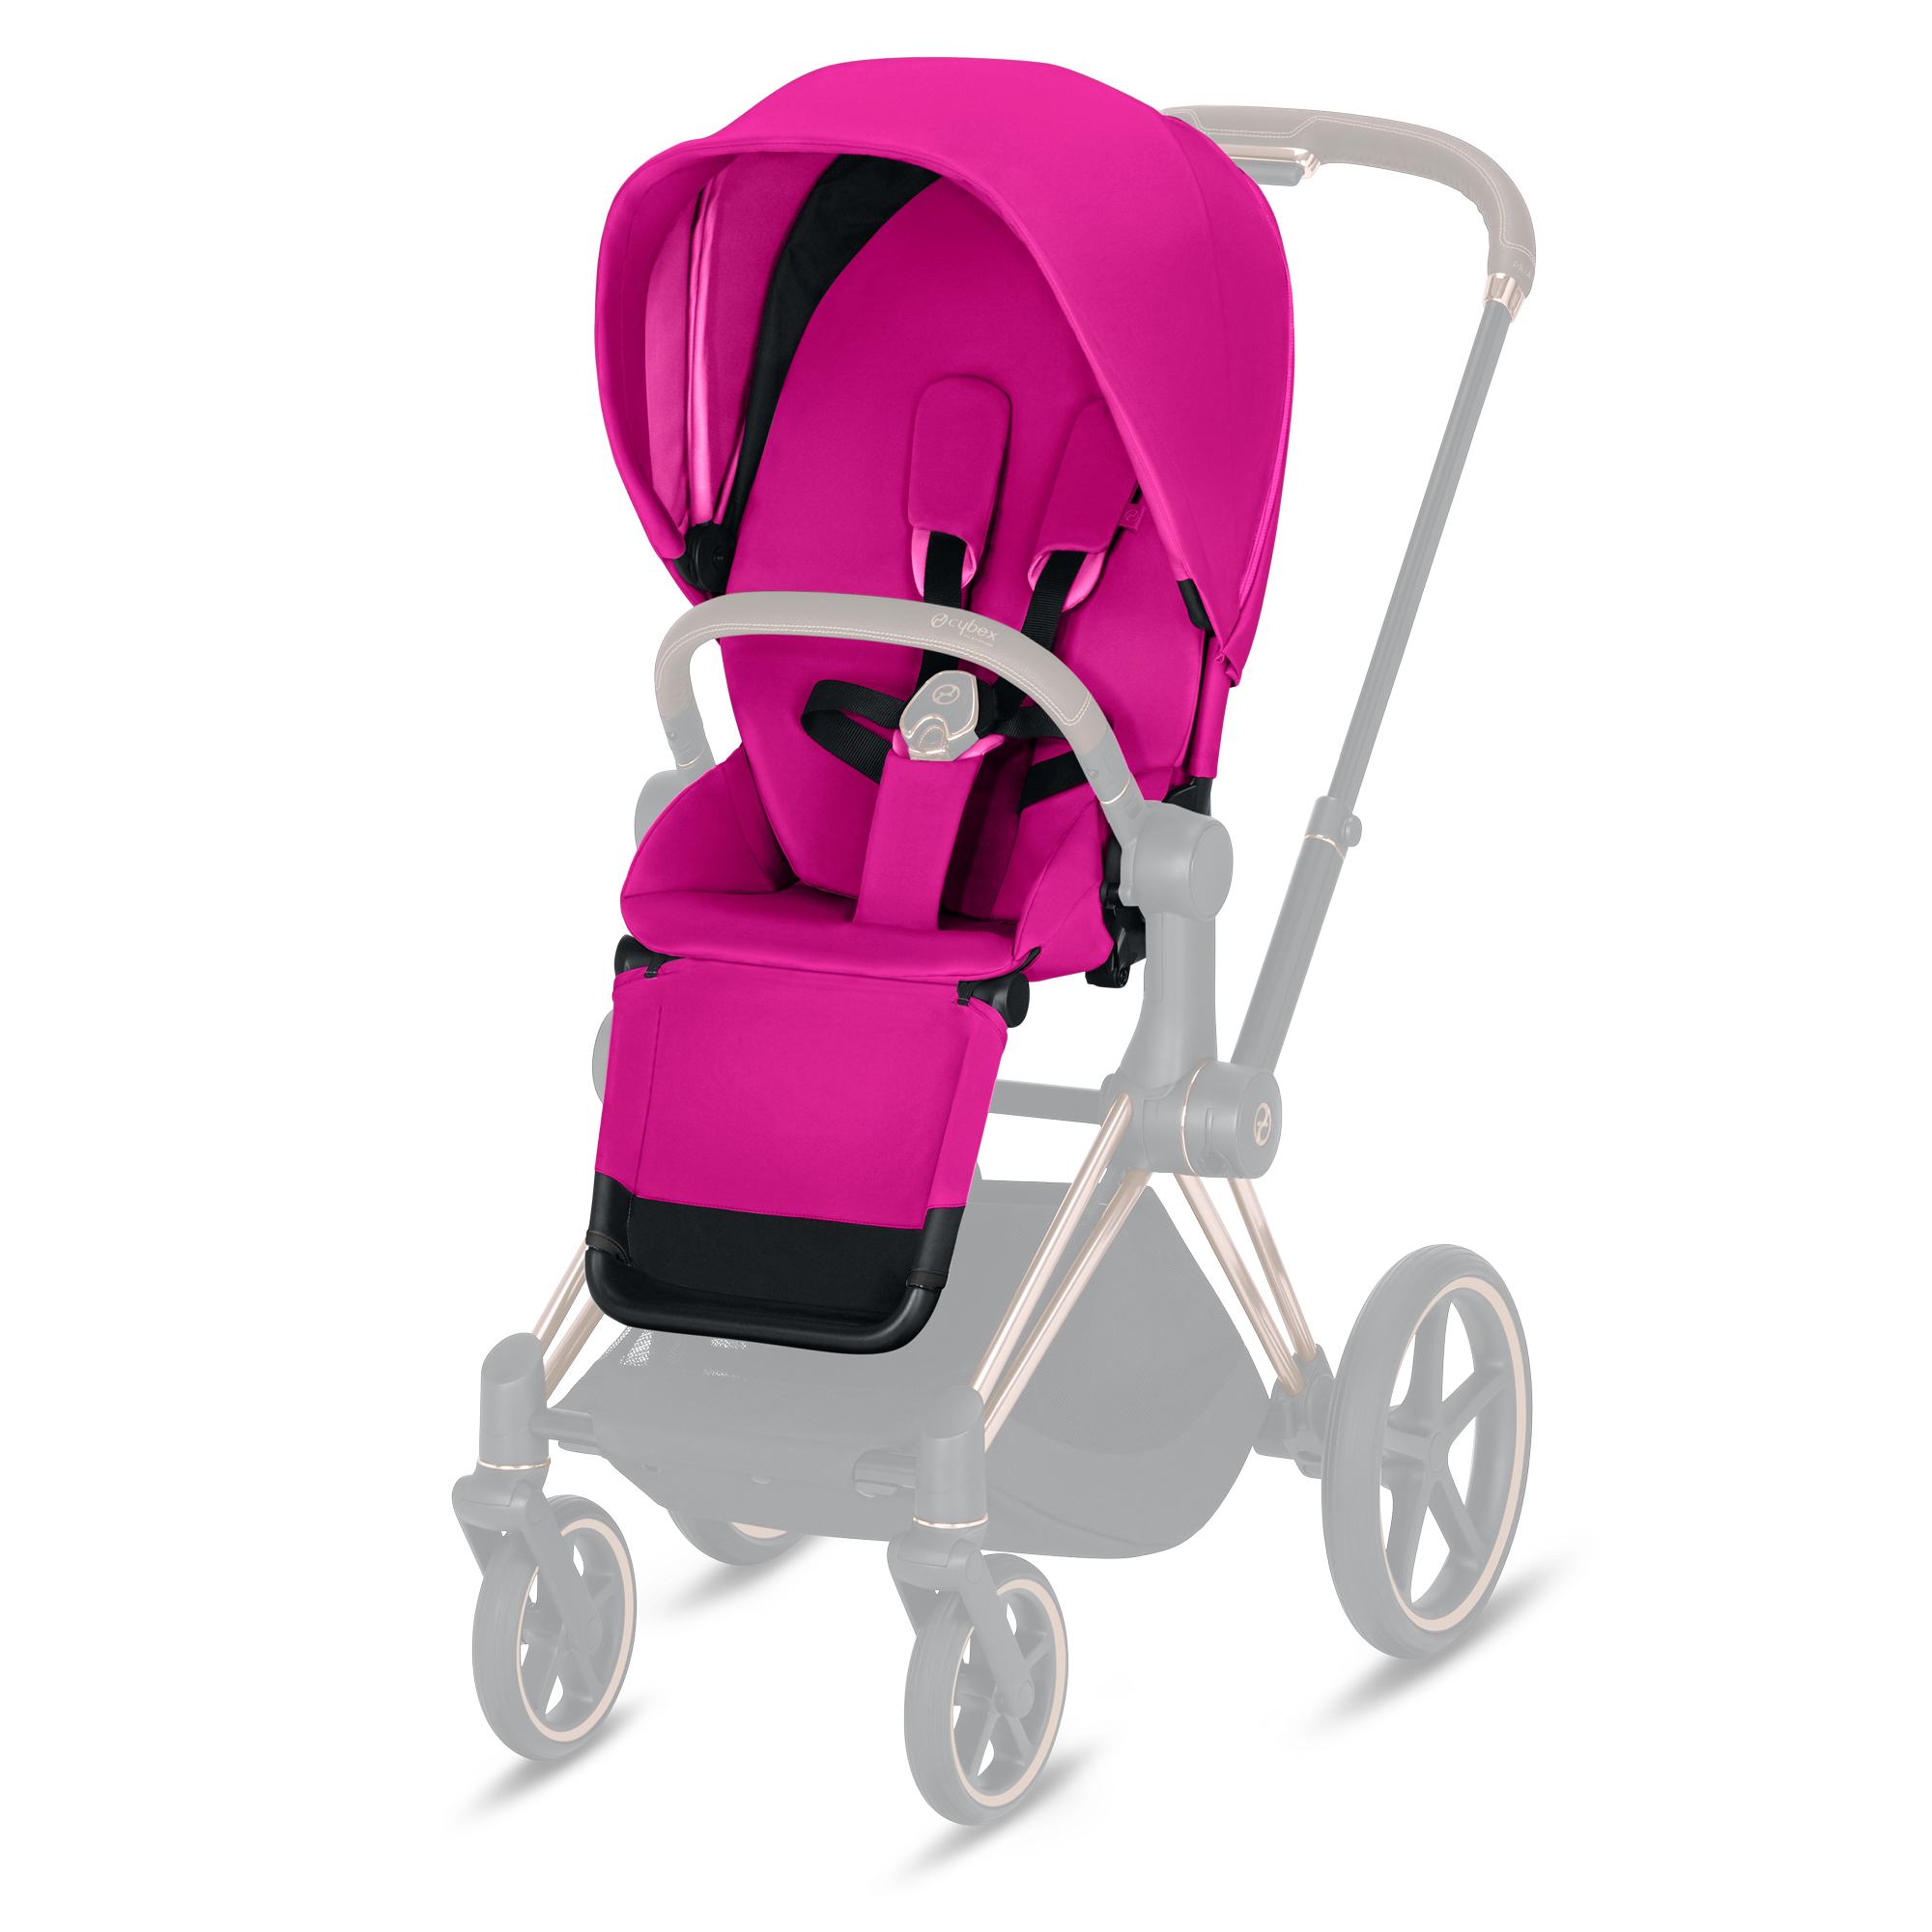 Cybex_Priam_2.0_Fancy_pink_spacerówka